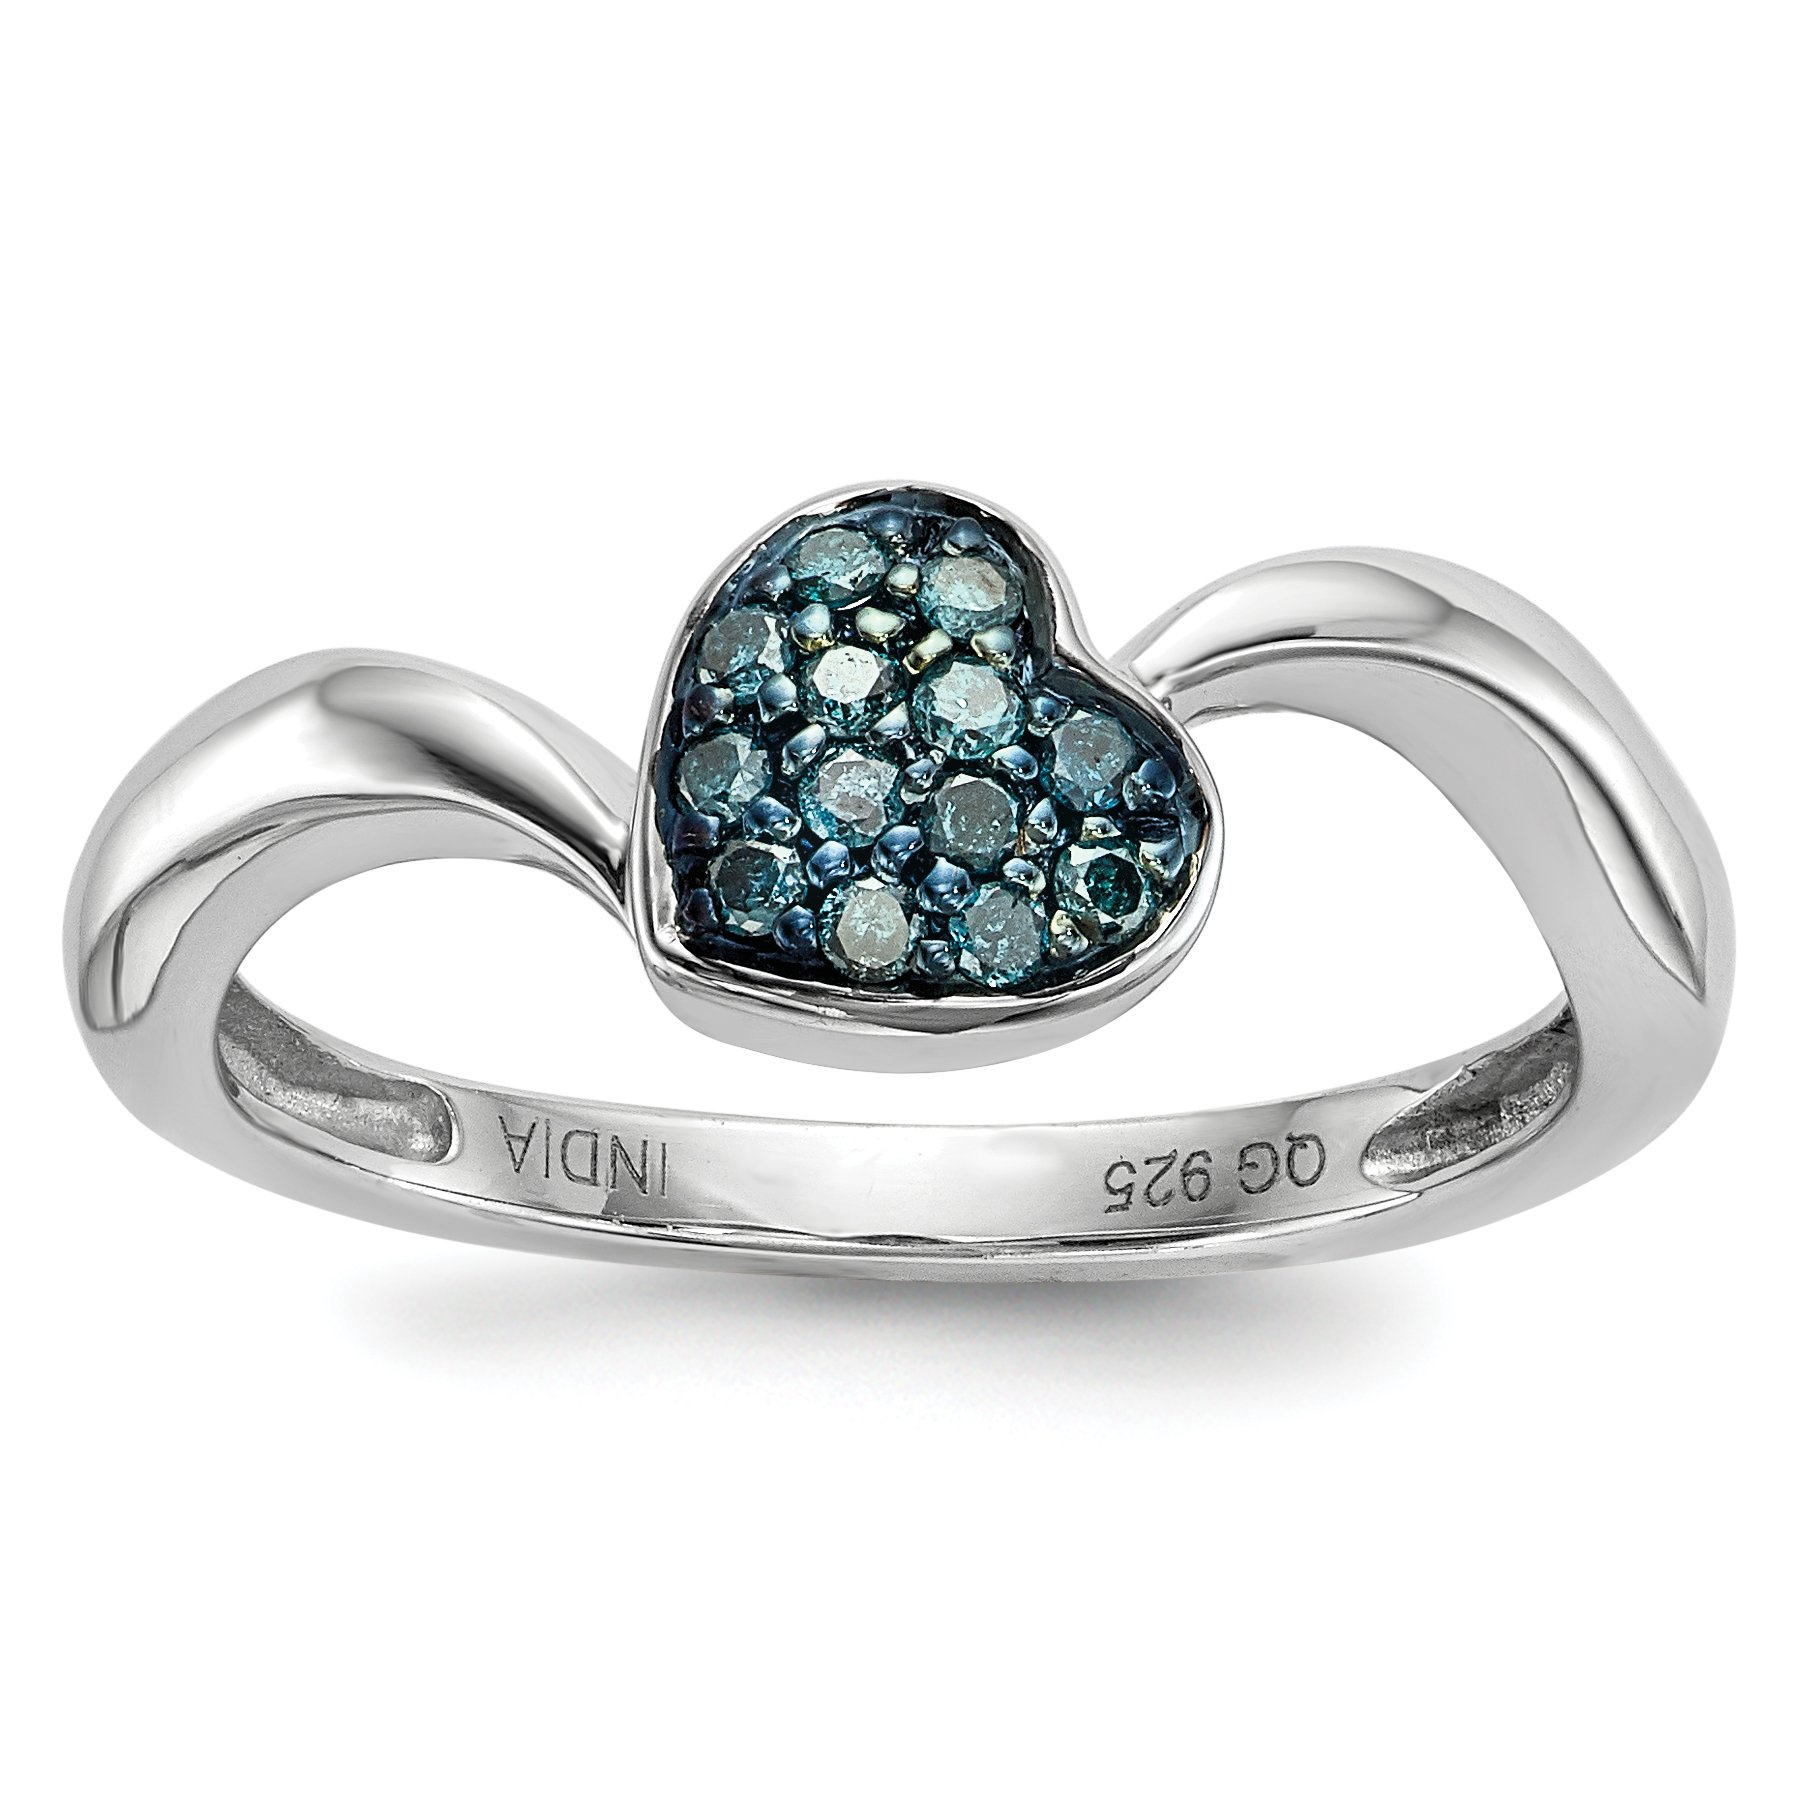 ICE CARATS 925 Sterling Silver Blue Diamond Small Heart Band Ring Size 7.00 S/love Fine Jewelry Gift Set For Women Heart